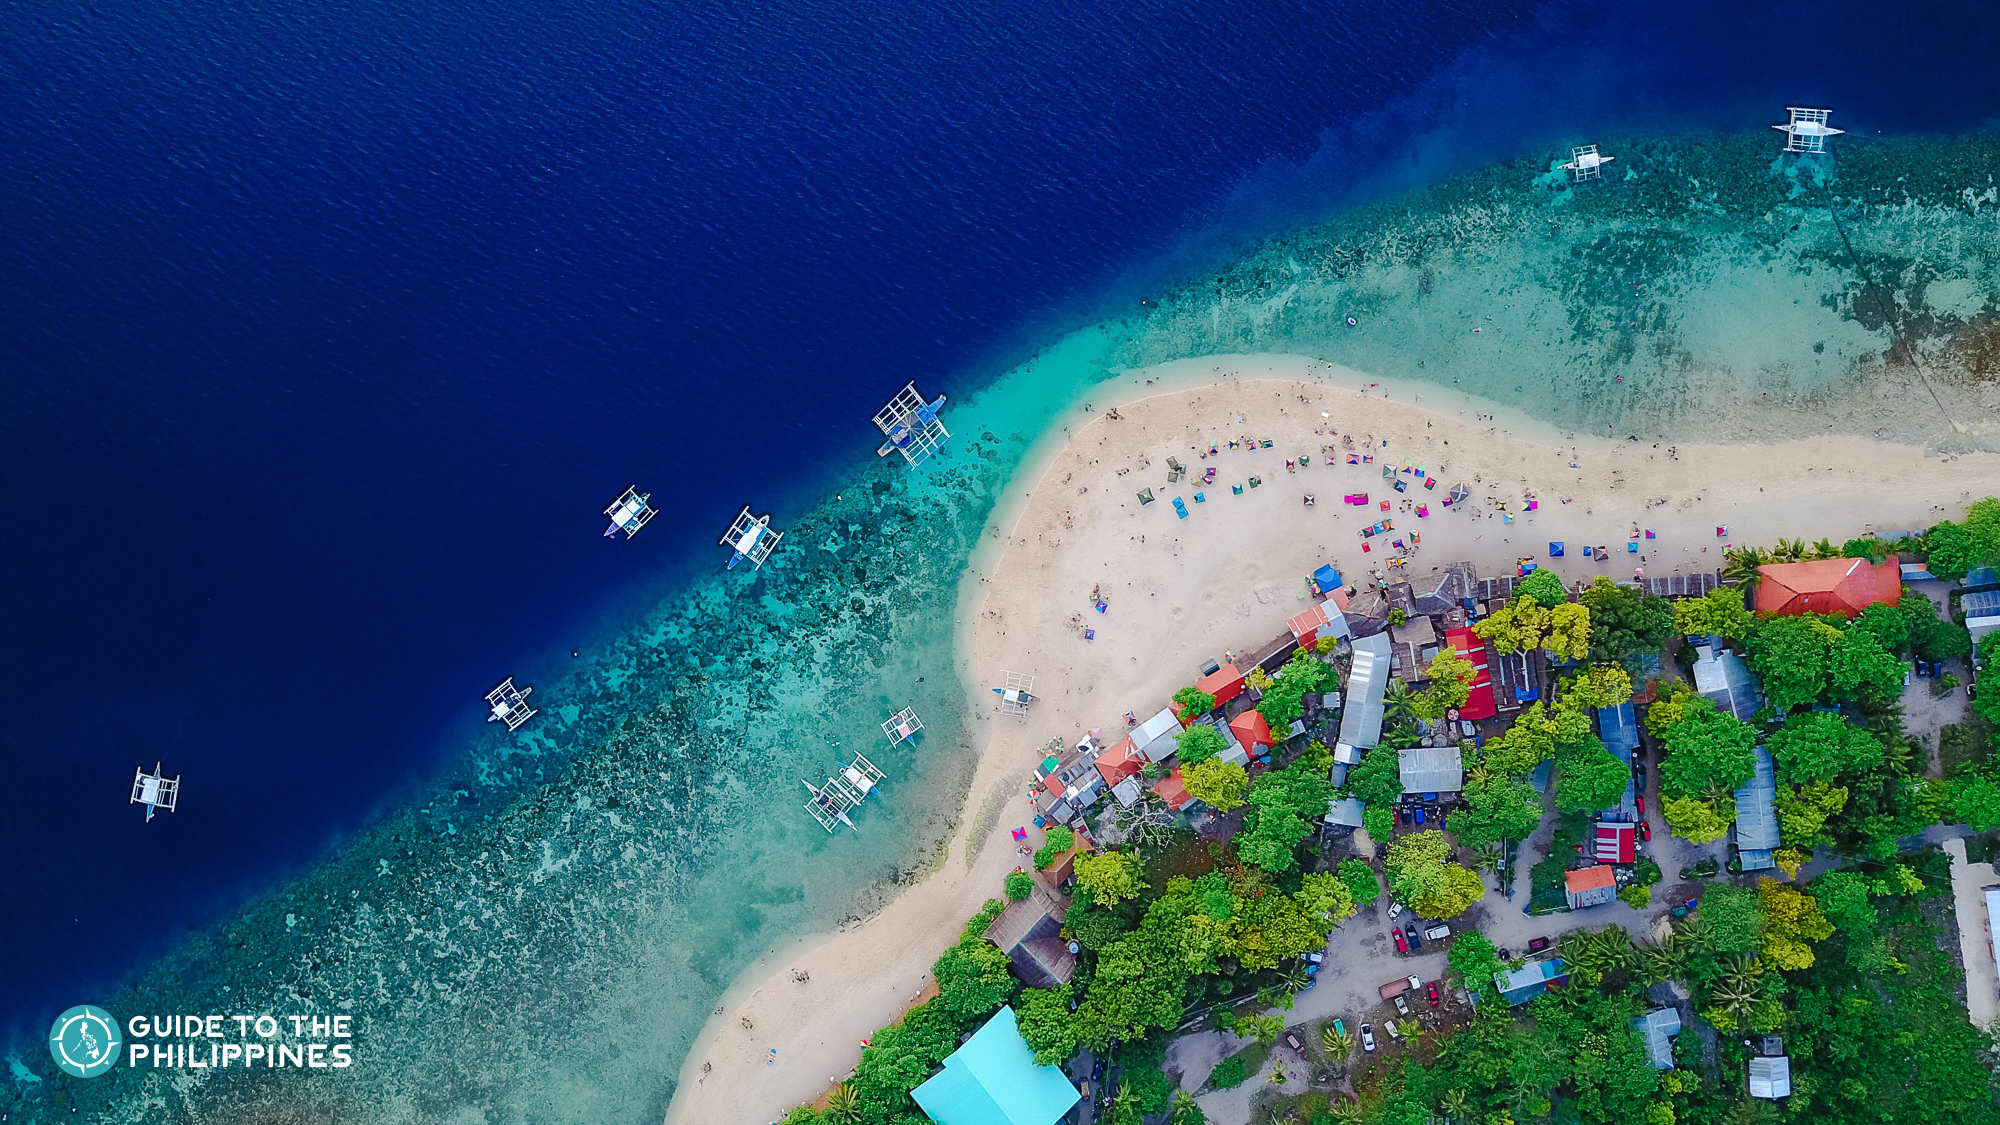 Top 5 Philippine Destinations From Cebu You Should Visit